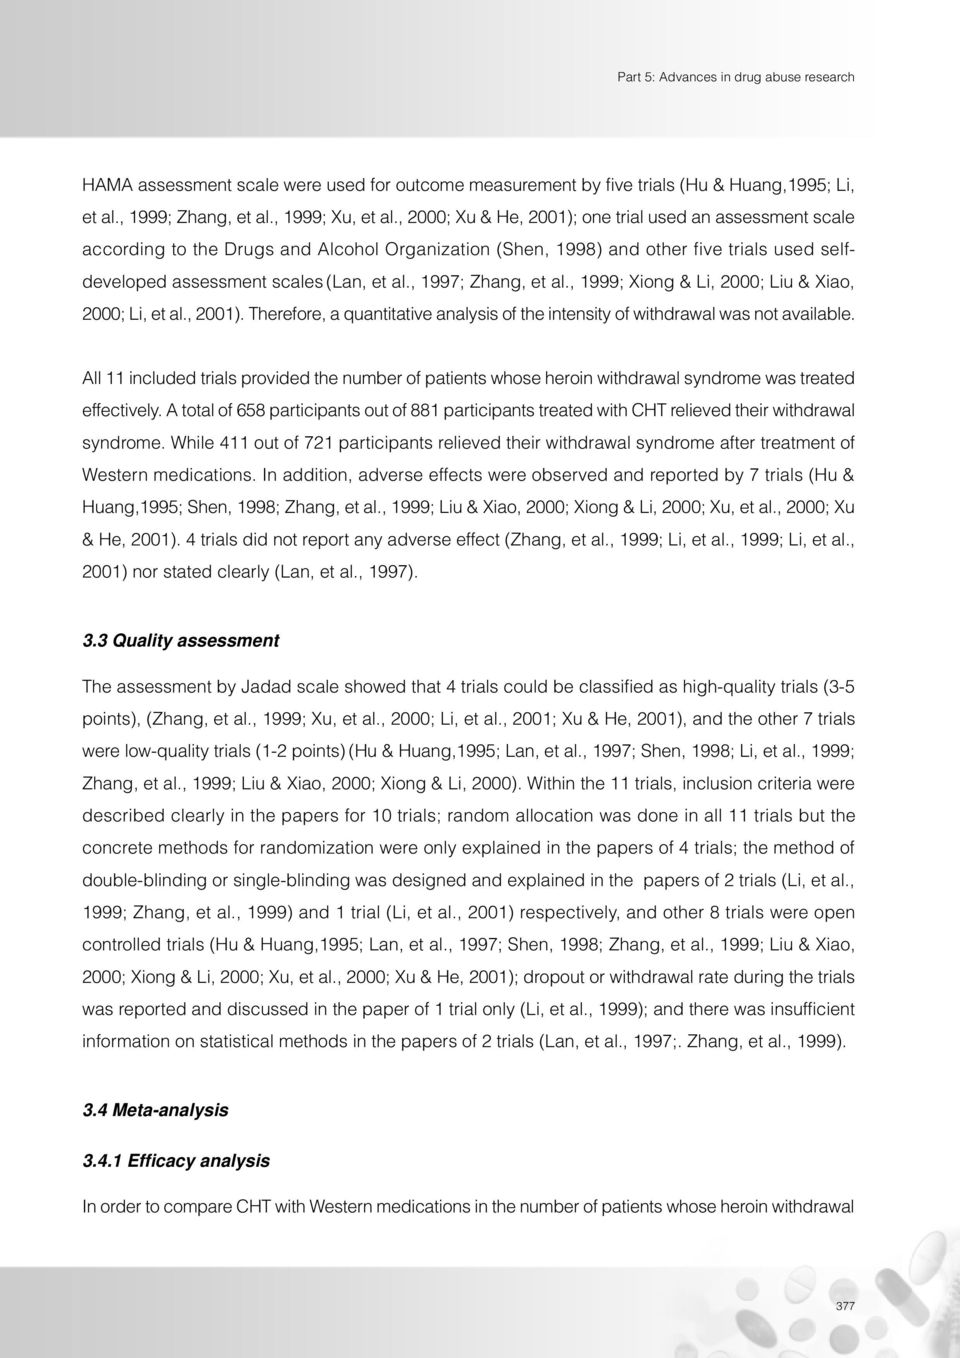 , 1997; Zhang, et al., 1999; Xiong & Li, 2000; Liu & Xiao, 2000; Li, et al., 2001). Therefore, a quantitative analysis of the intensity of withdrawal was not available.